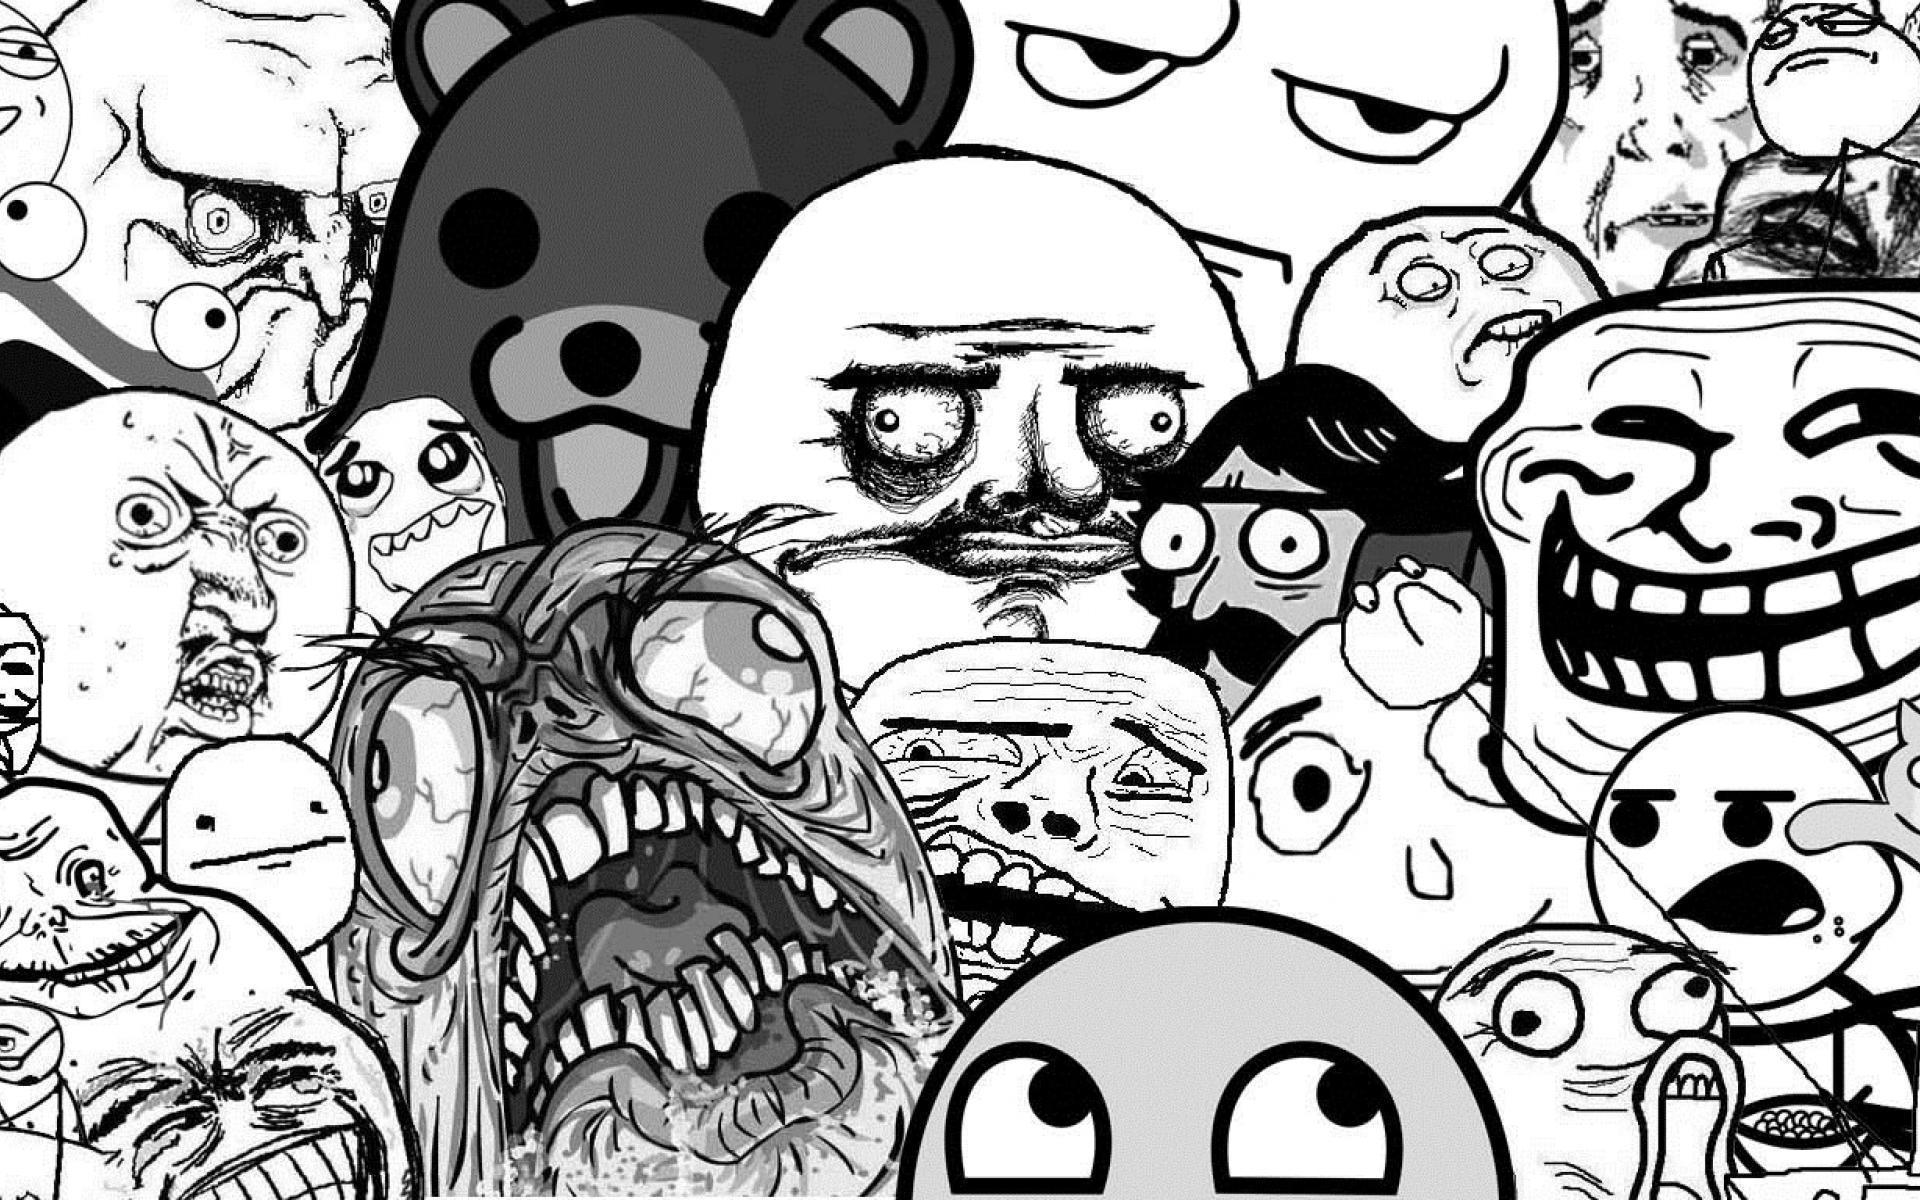 meme wallpapers memes faces face funny hd troll derp collage cave internet comics